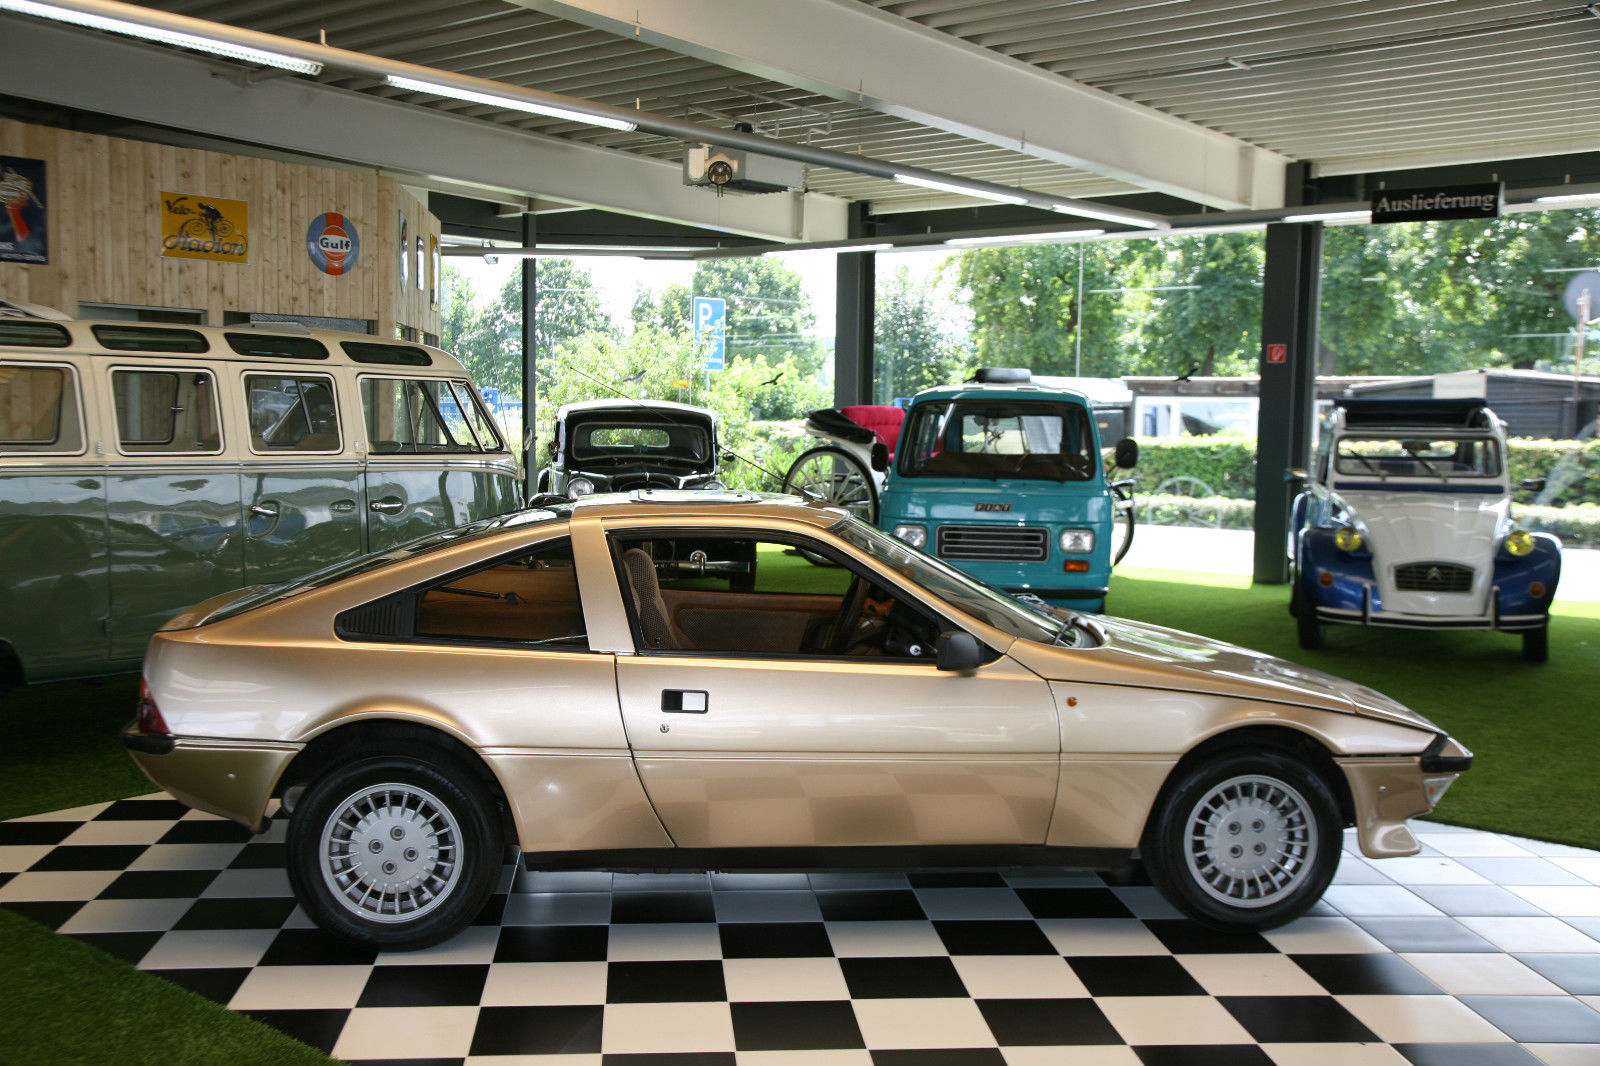 This Talbot-Matra Murena is an exotic little car seen here in the company of some other exotic cars.